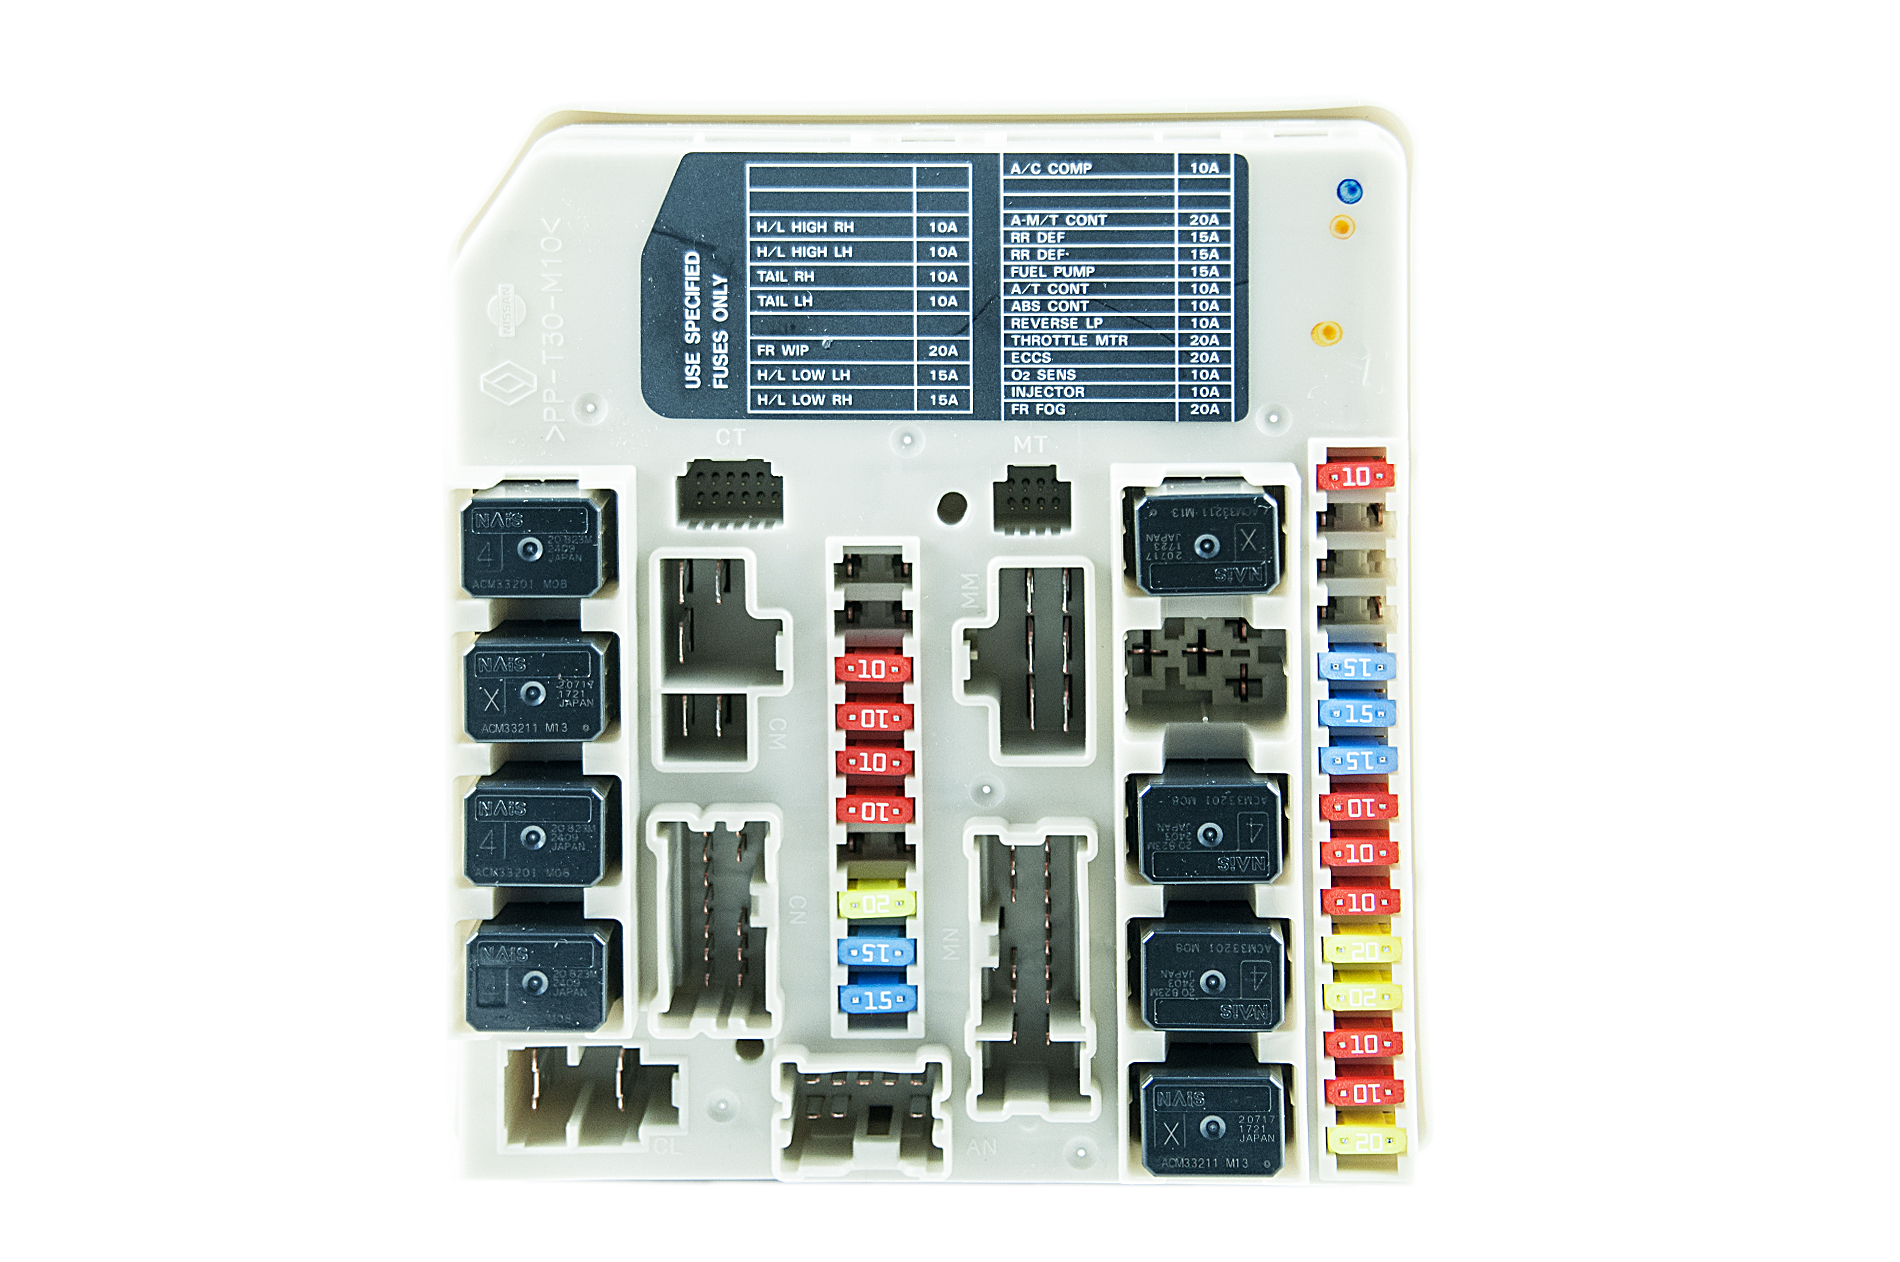 fuse box for nissan micra on fuse images free download wiring Frontier Fuse Box nissan intelligent power distribution module 2012 nissan frontier fuse box diagram 2002 pathfinder fuse box frontier fuse box